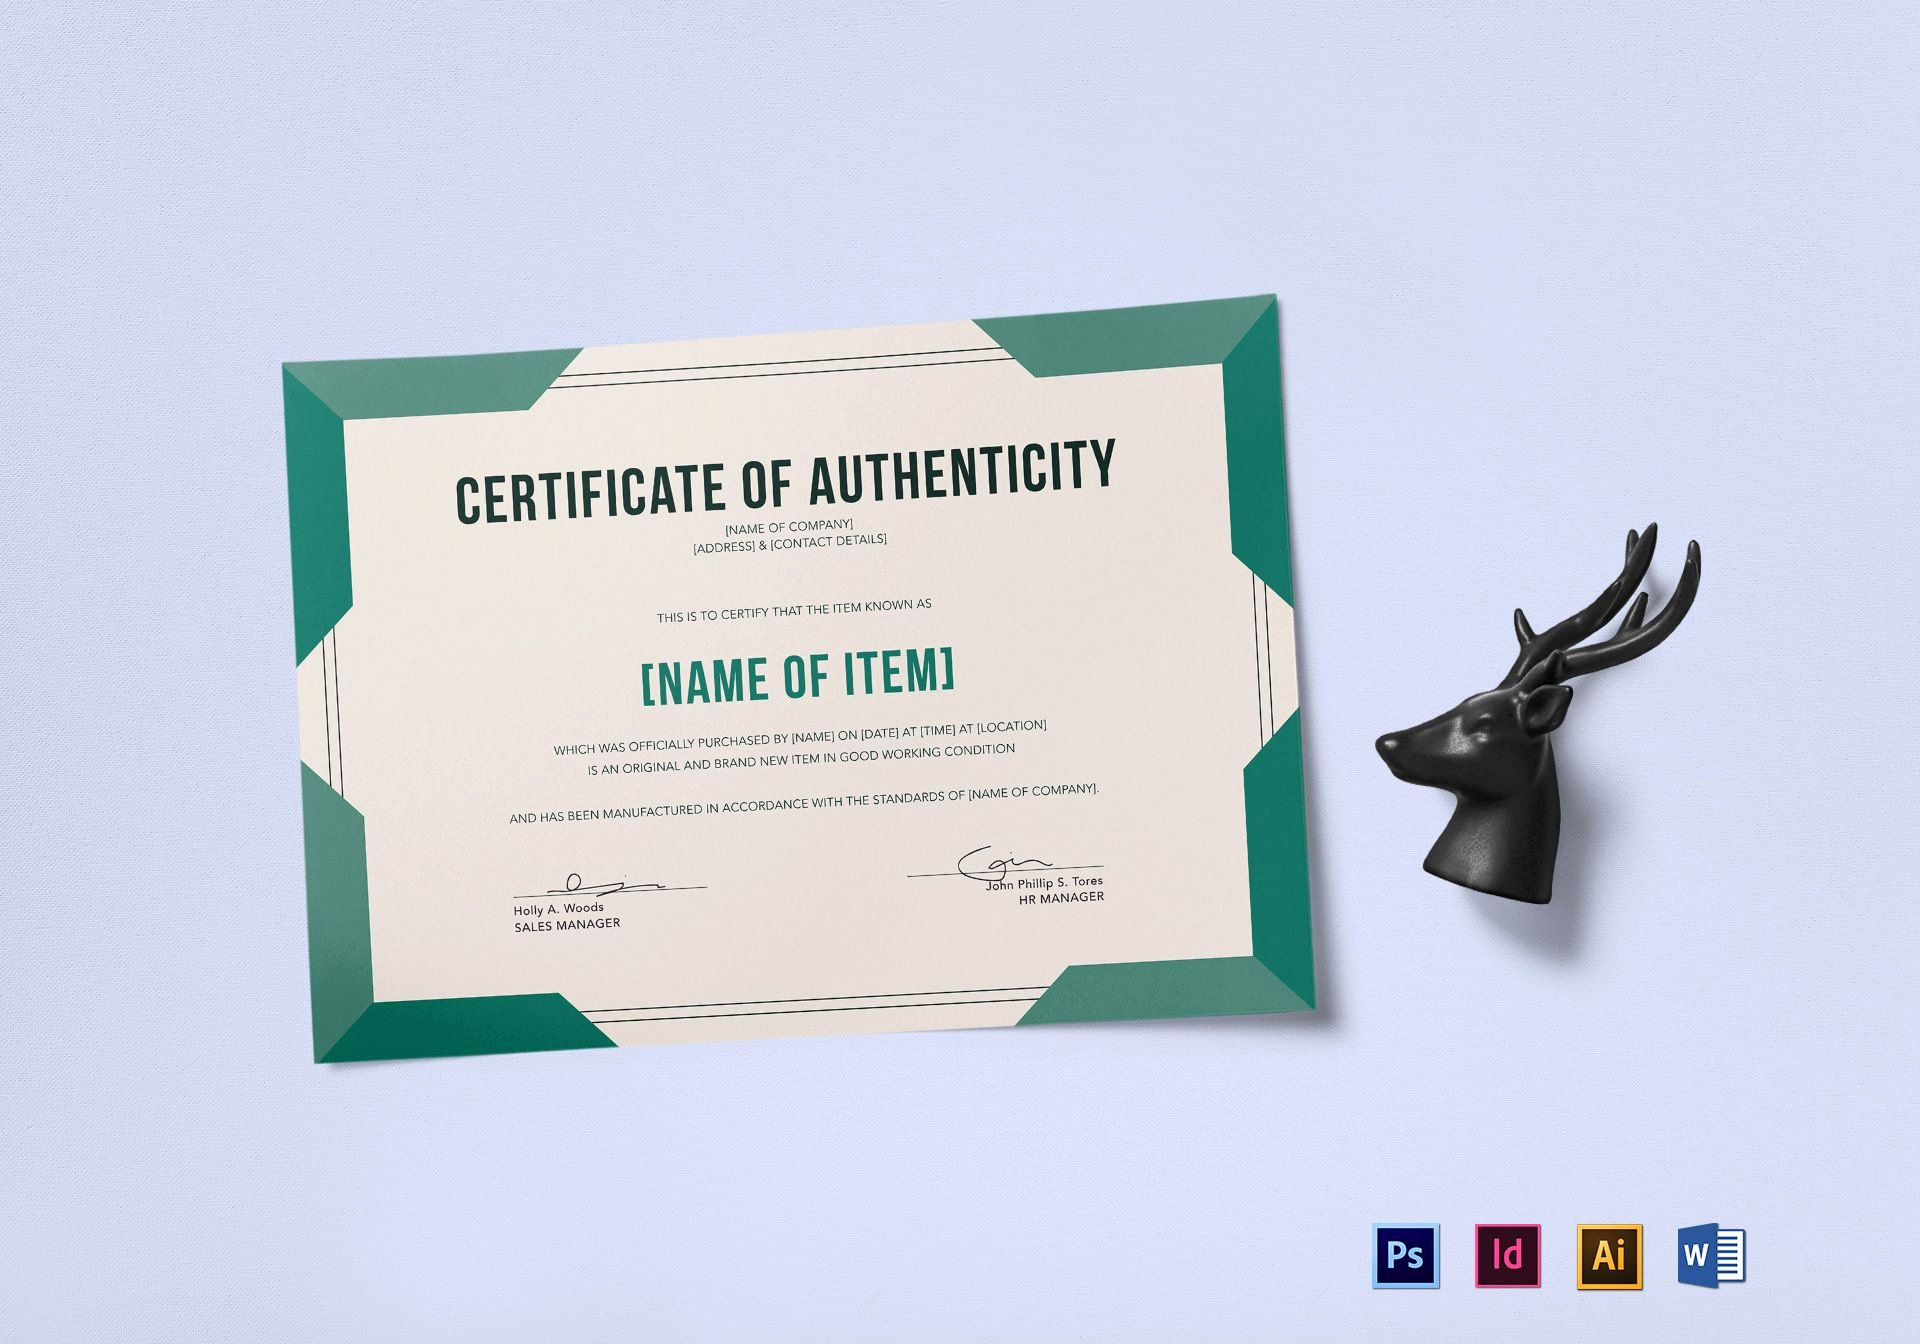 Certificate Of Authenticity Template Free Beautiful Elegant Certificate Of Authenticity Design Template In Psd